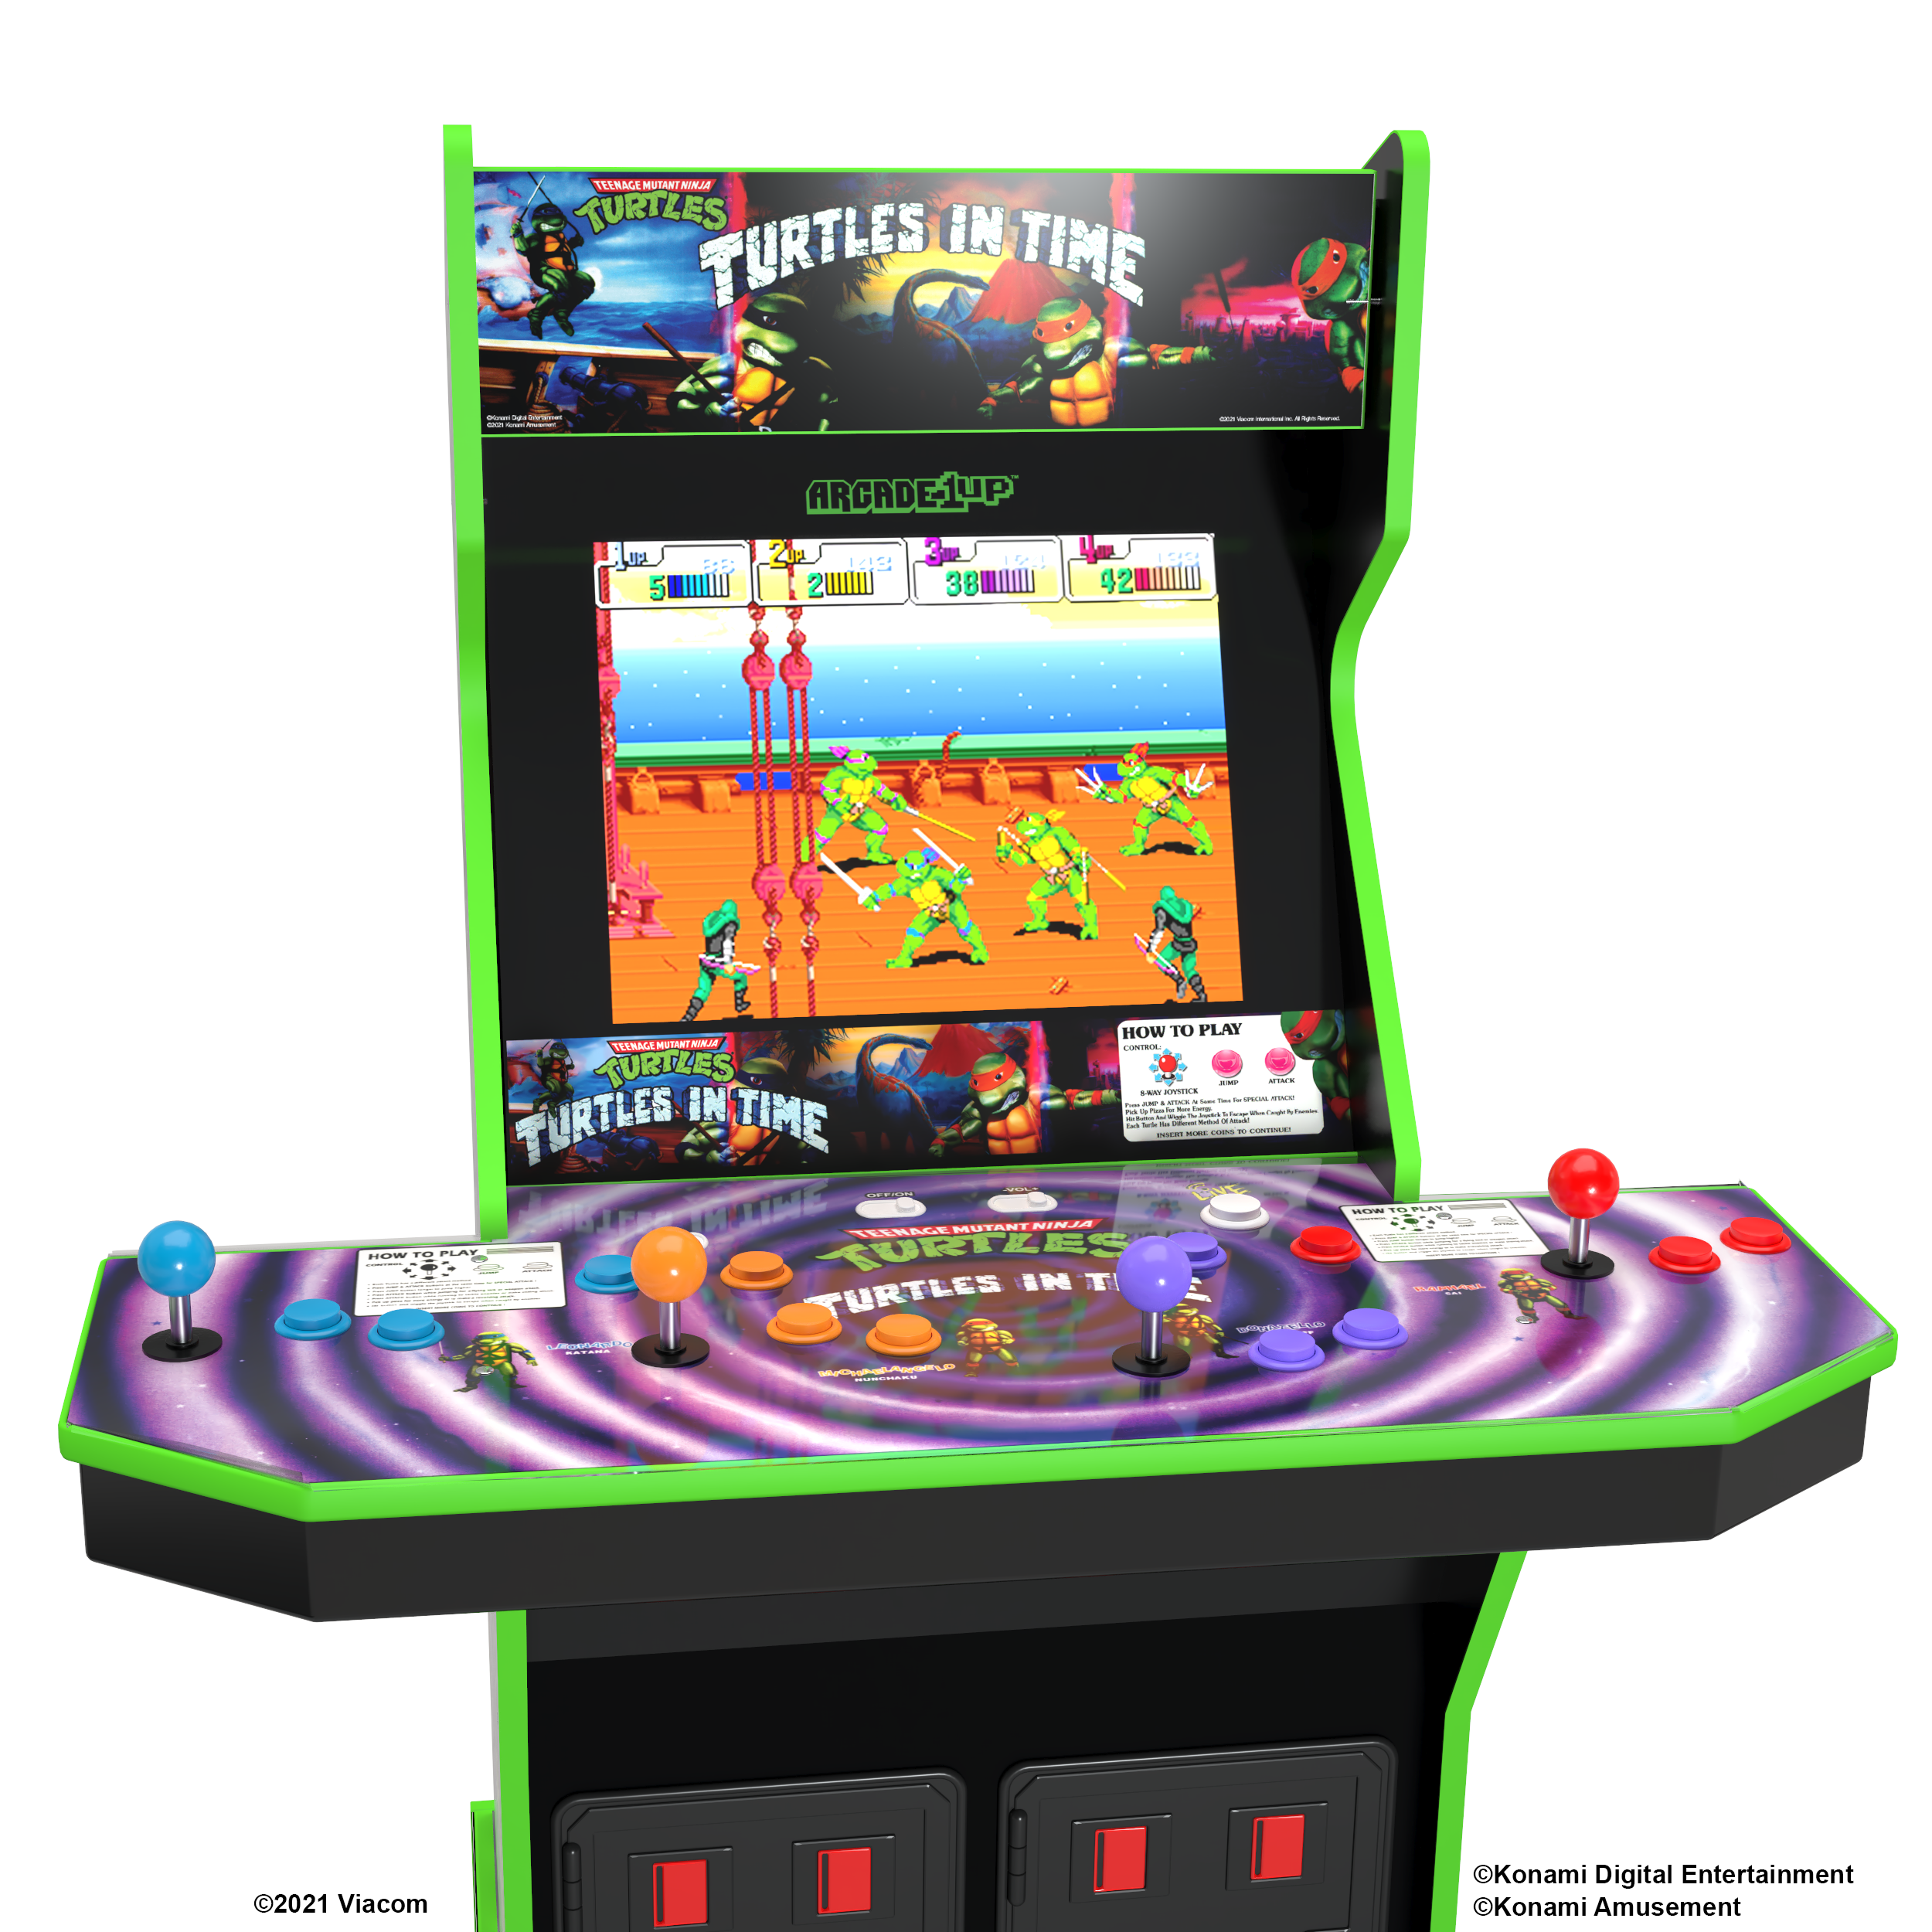 There's a lot of turtle action in this one machine.